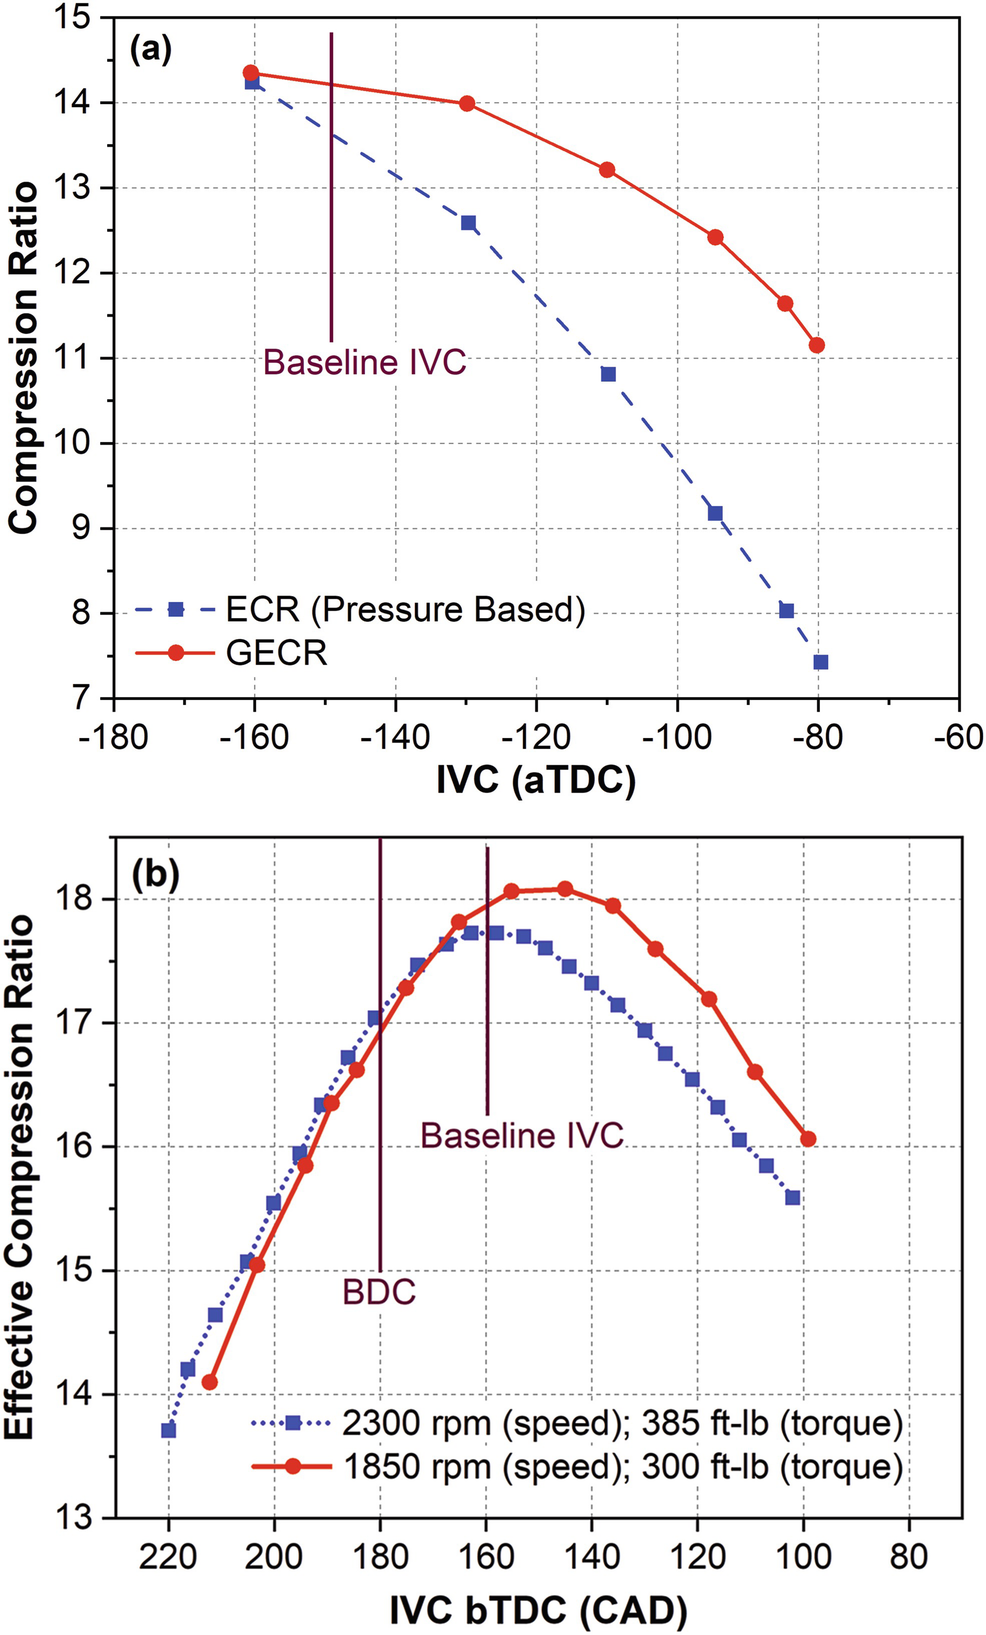 Estimation of Engine Parameters from Measured Cylinder ... on